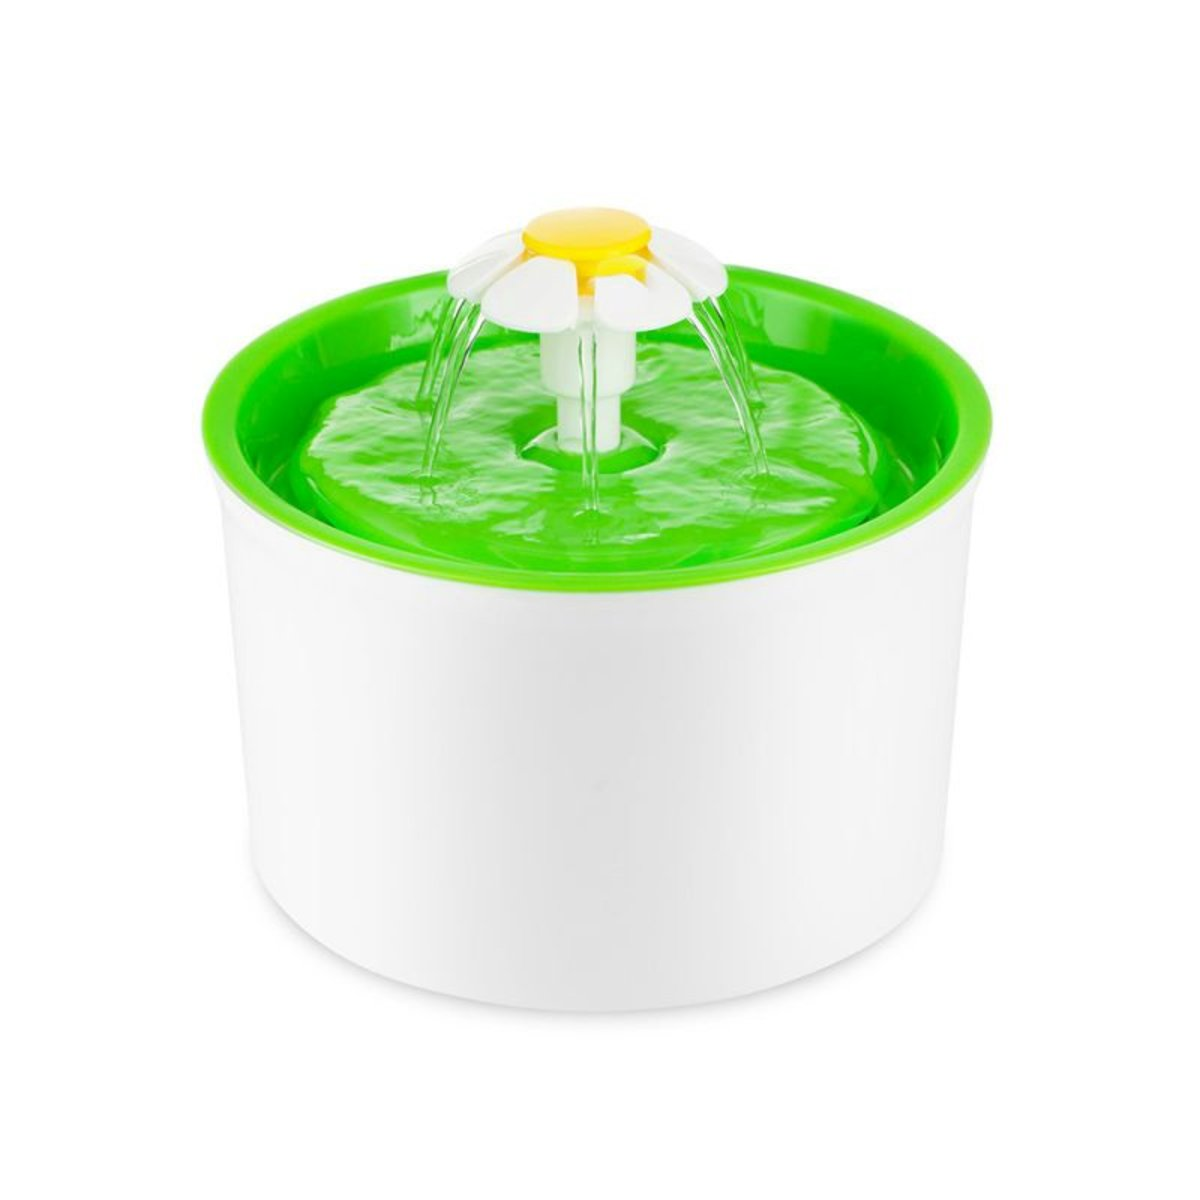 Flower Fountain for Pets (Green) With 3 Filters - Model: BeaconPetkit-FG